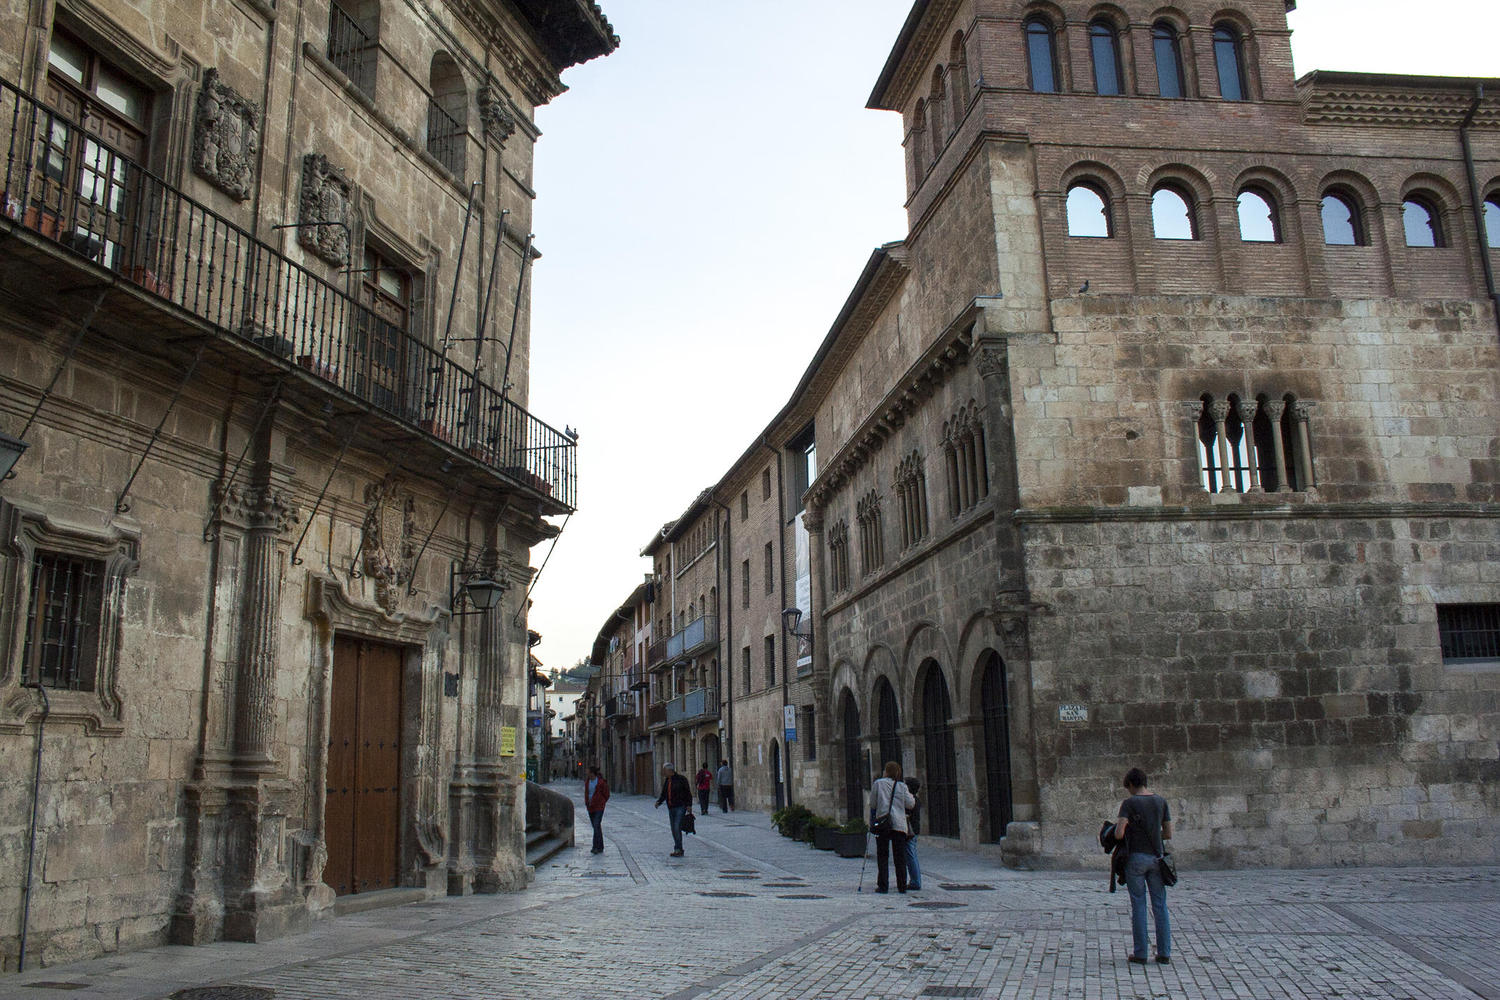 The Palace of the Kings of Navarre in Estella stands by the Camino